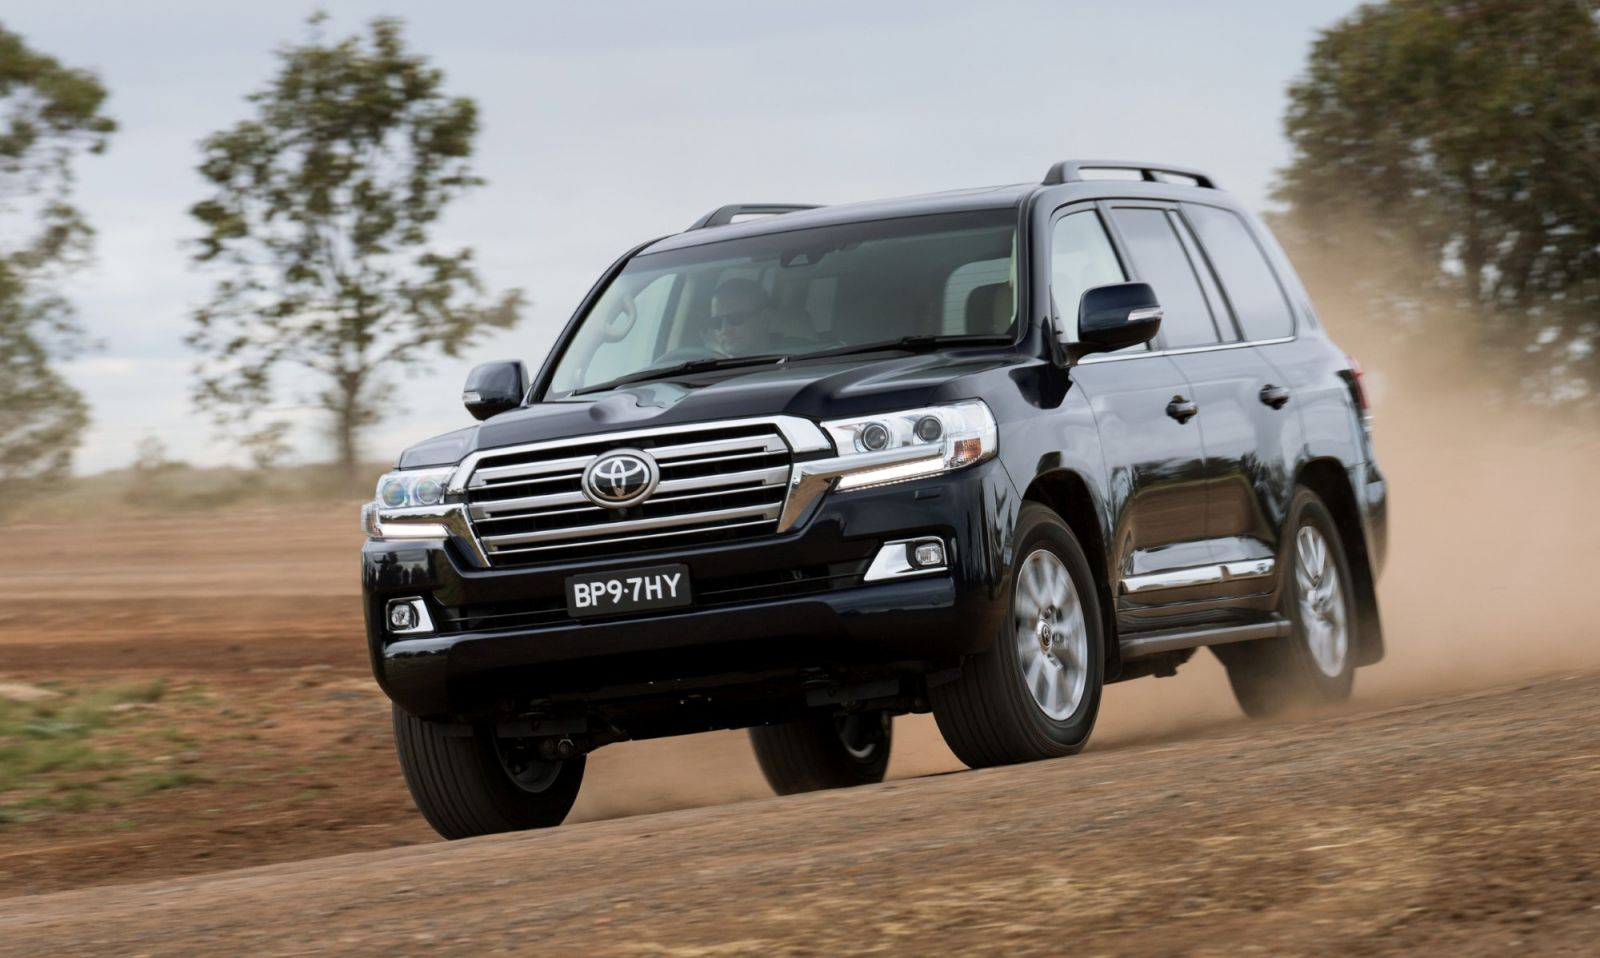 Toyota Passes-On Luxury Car Tax Savings, Renews Calls For LCT To Be Abolished